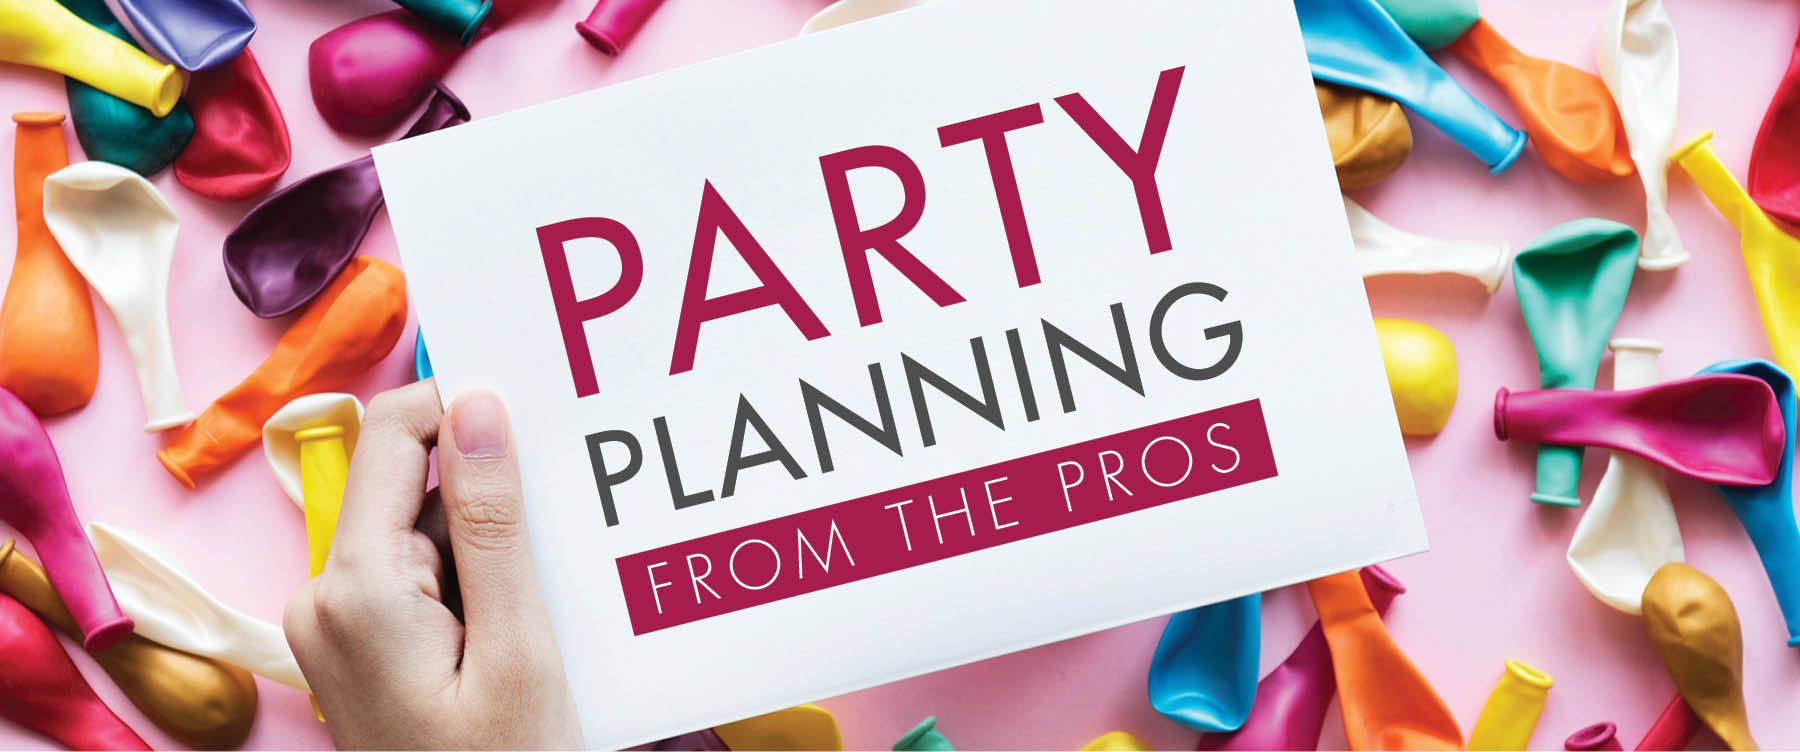 Party Planning from the Pros